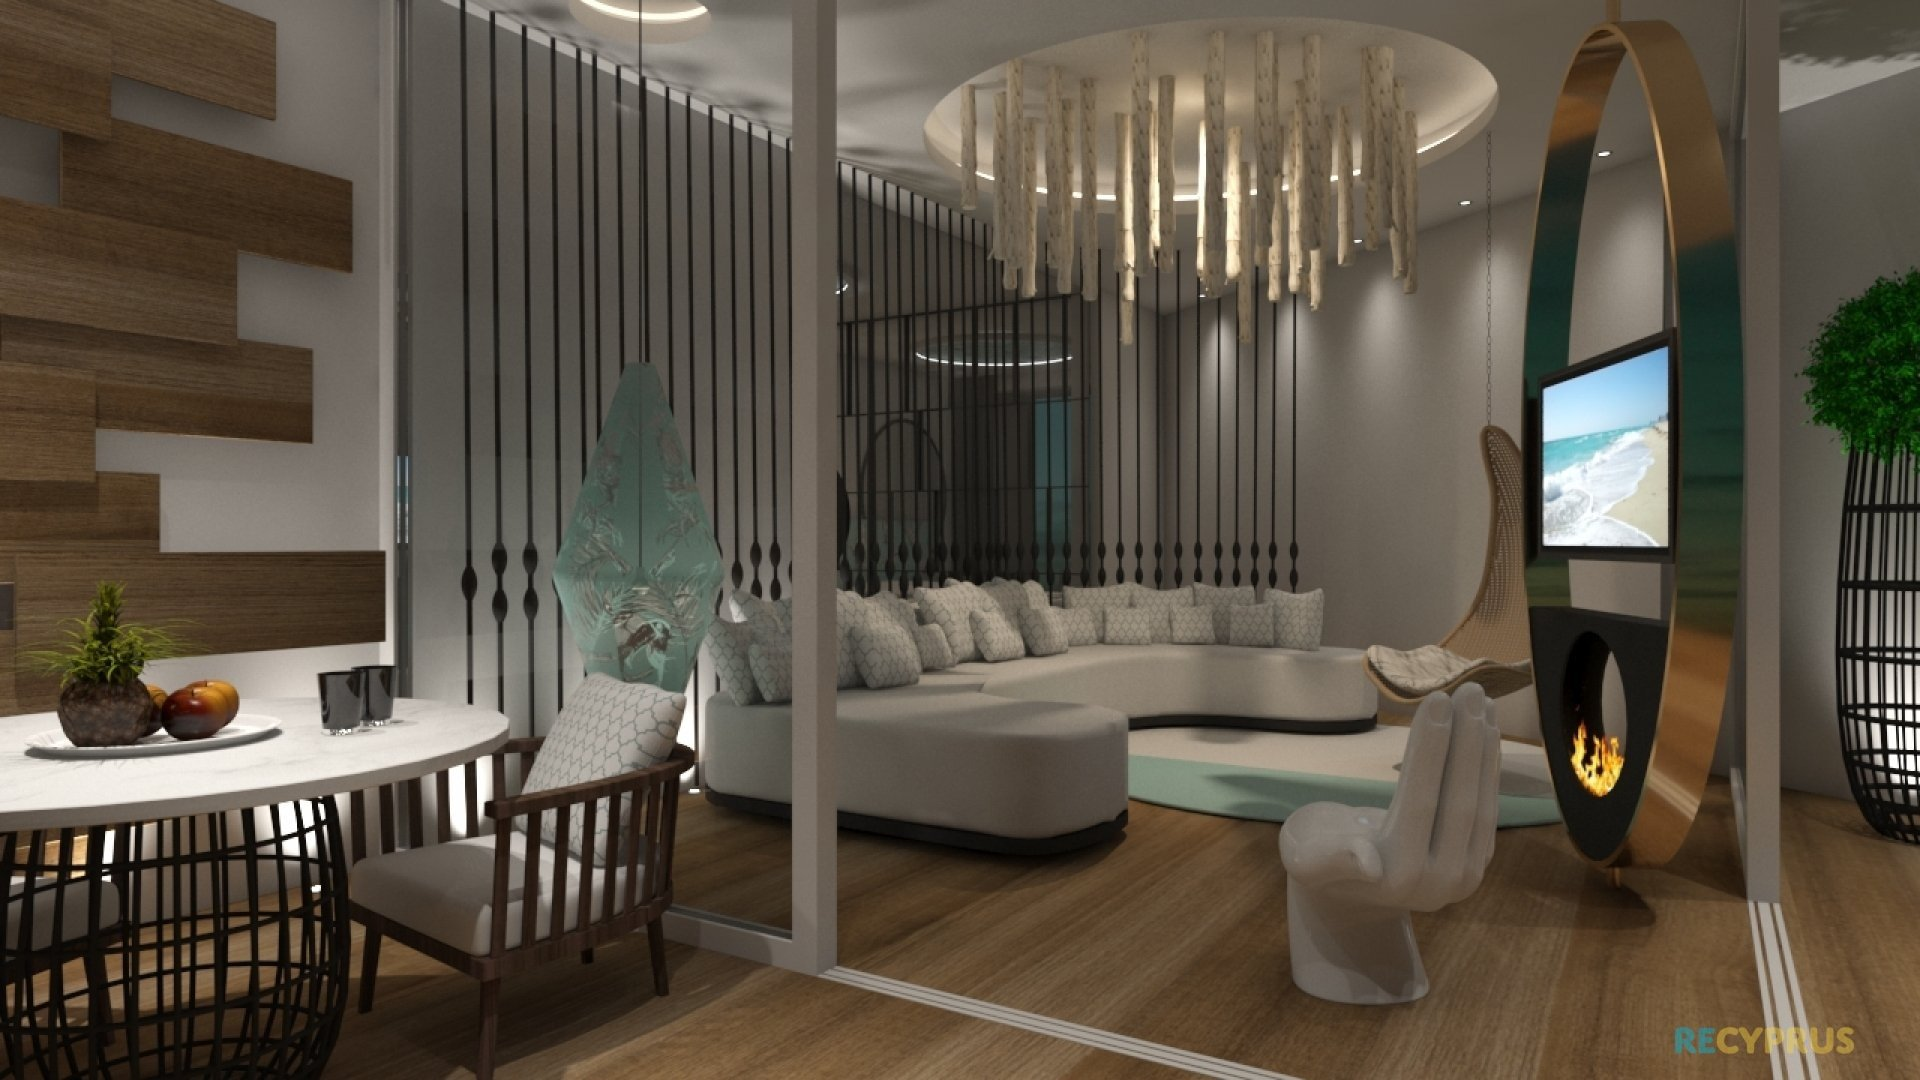 Apartment for sale Ayia Thekla Famagusta Cyprus 9 3450